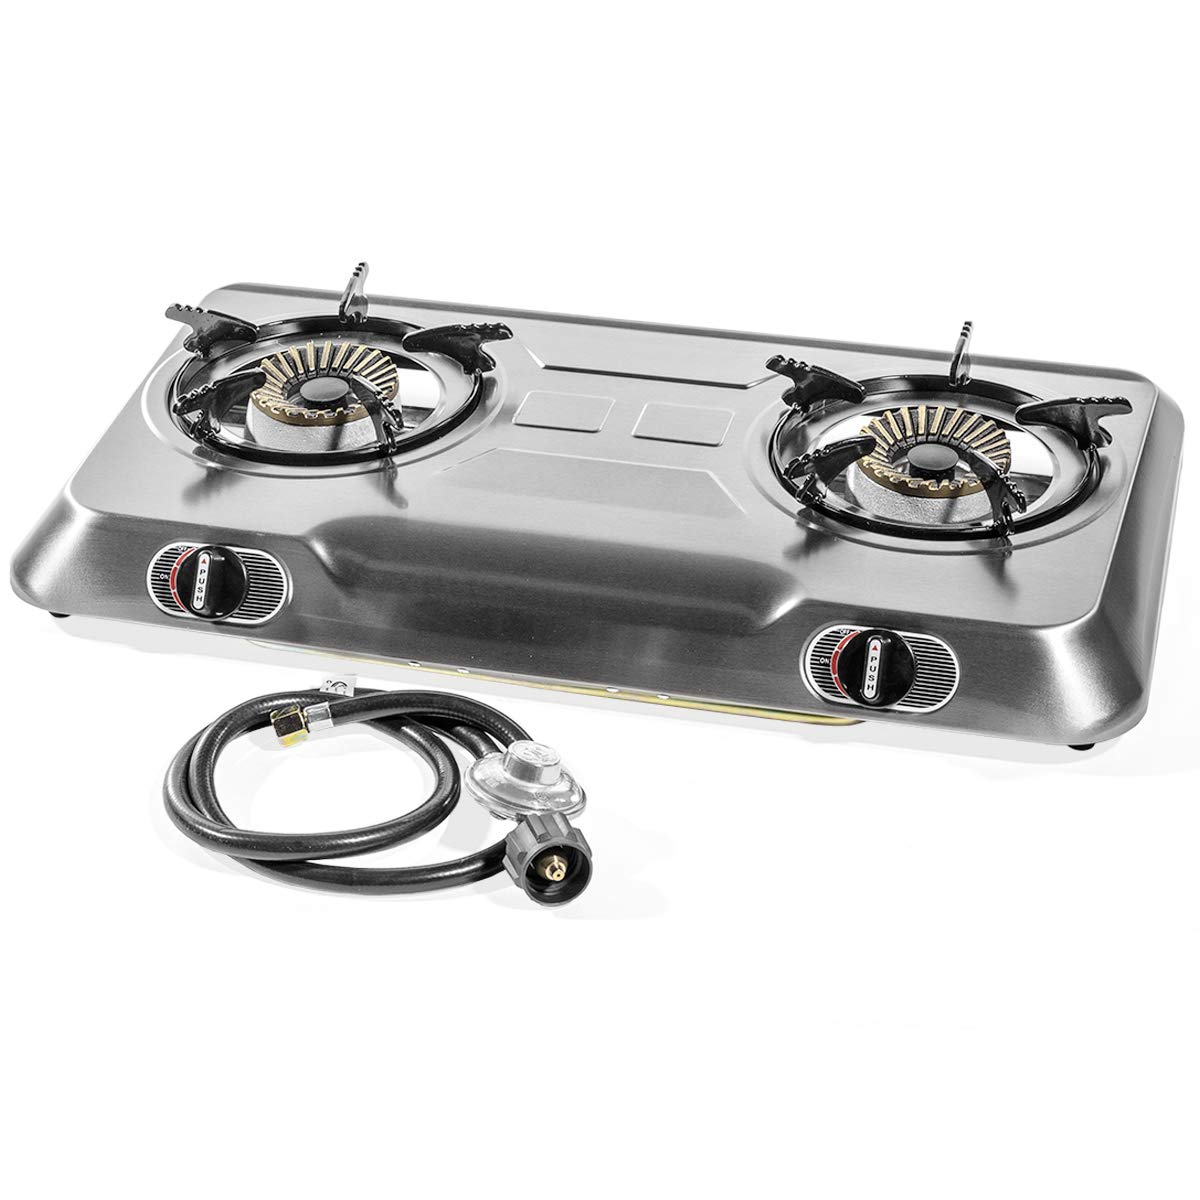 XtremepowerUS Deluxe Propane Gas Range Stove 2 Burner Stainless Steel Cooktop Auto Ignition 95518